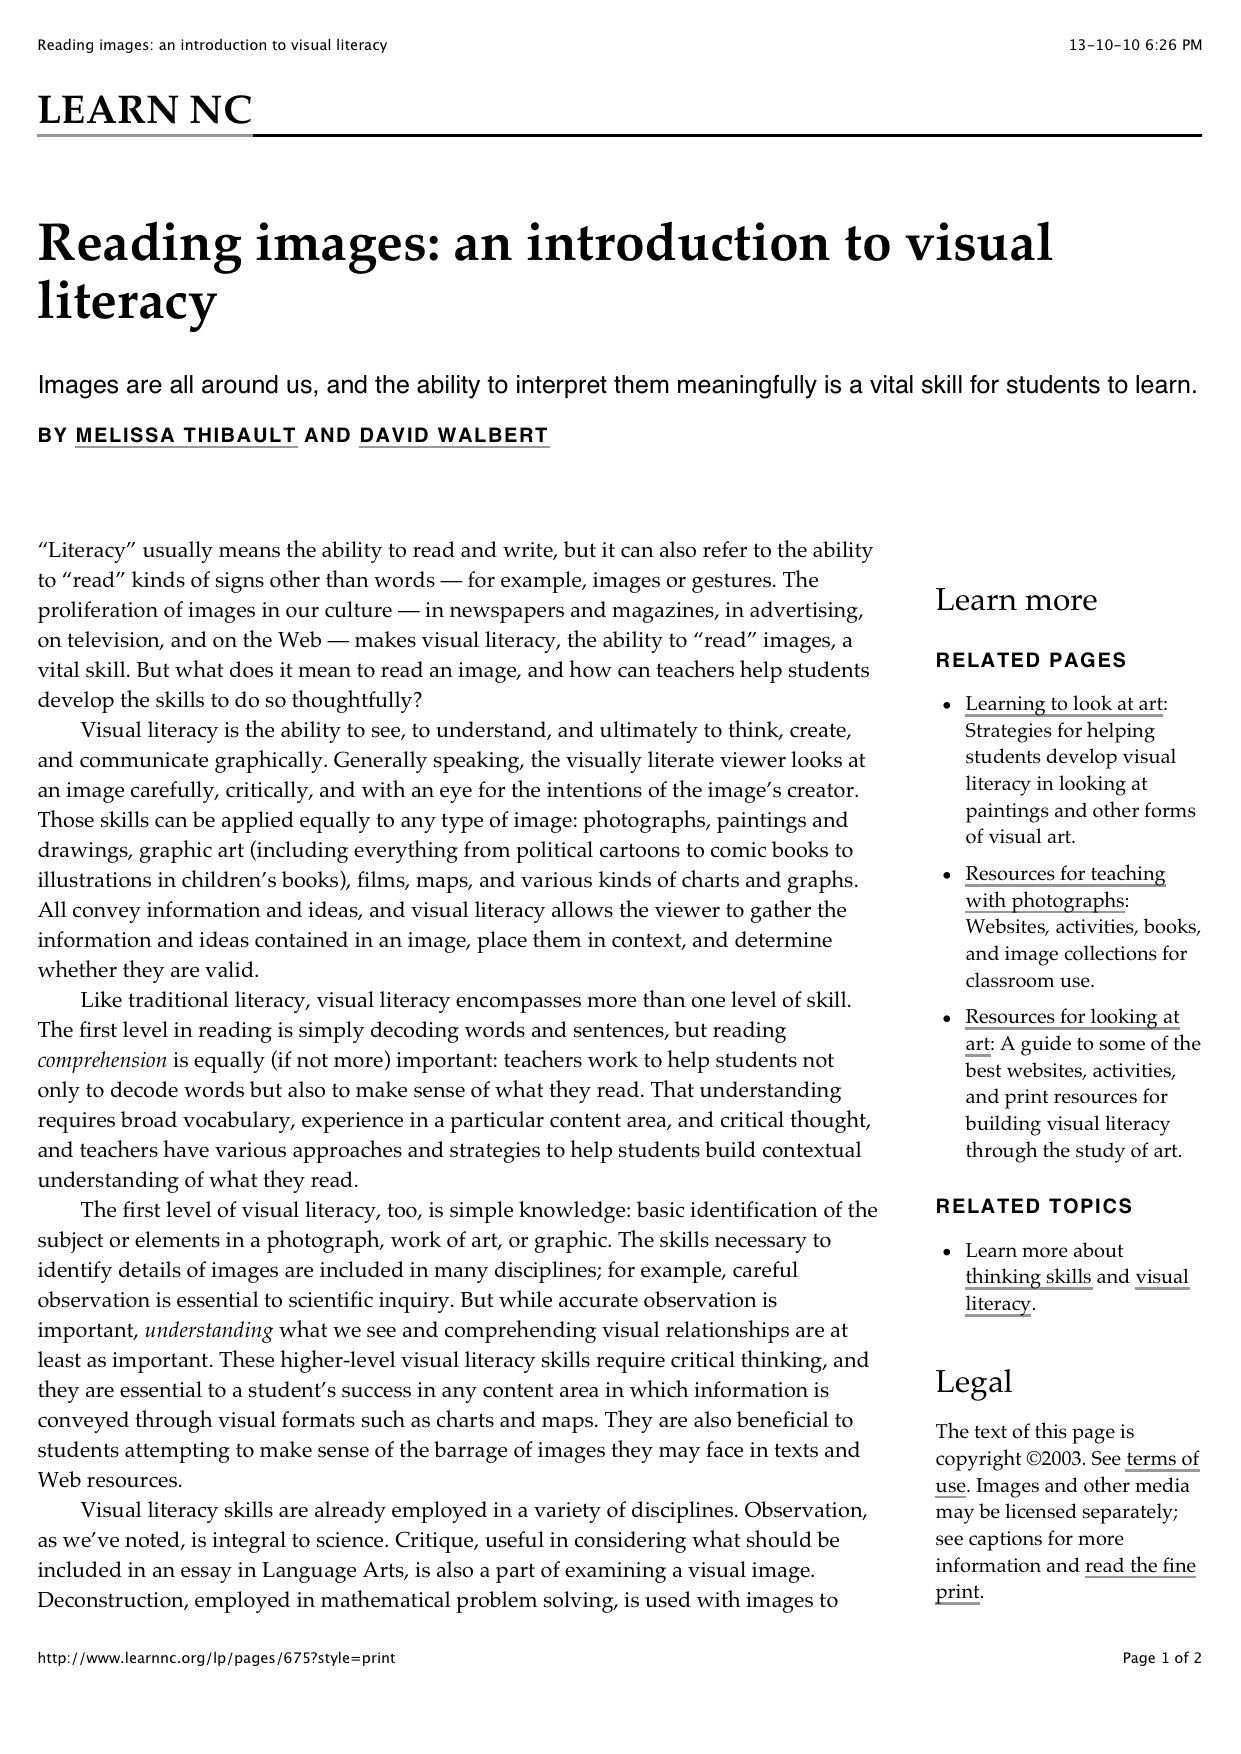 Article The Authors Advocate That Visual Literacy Skills